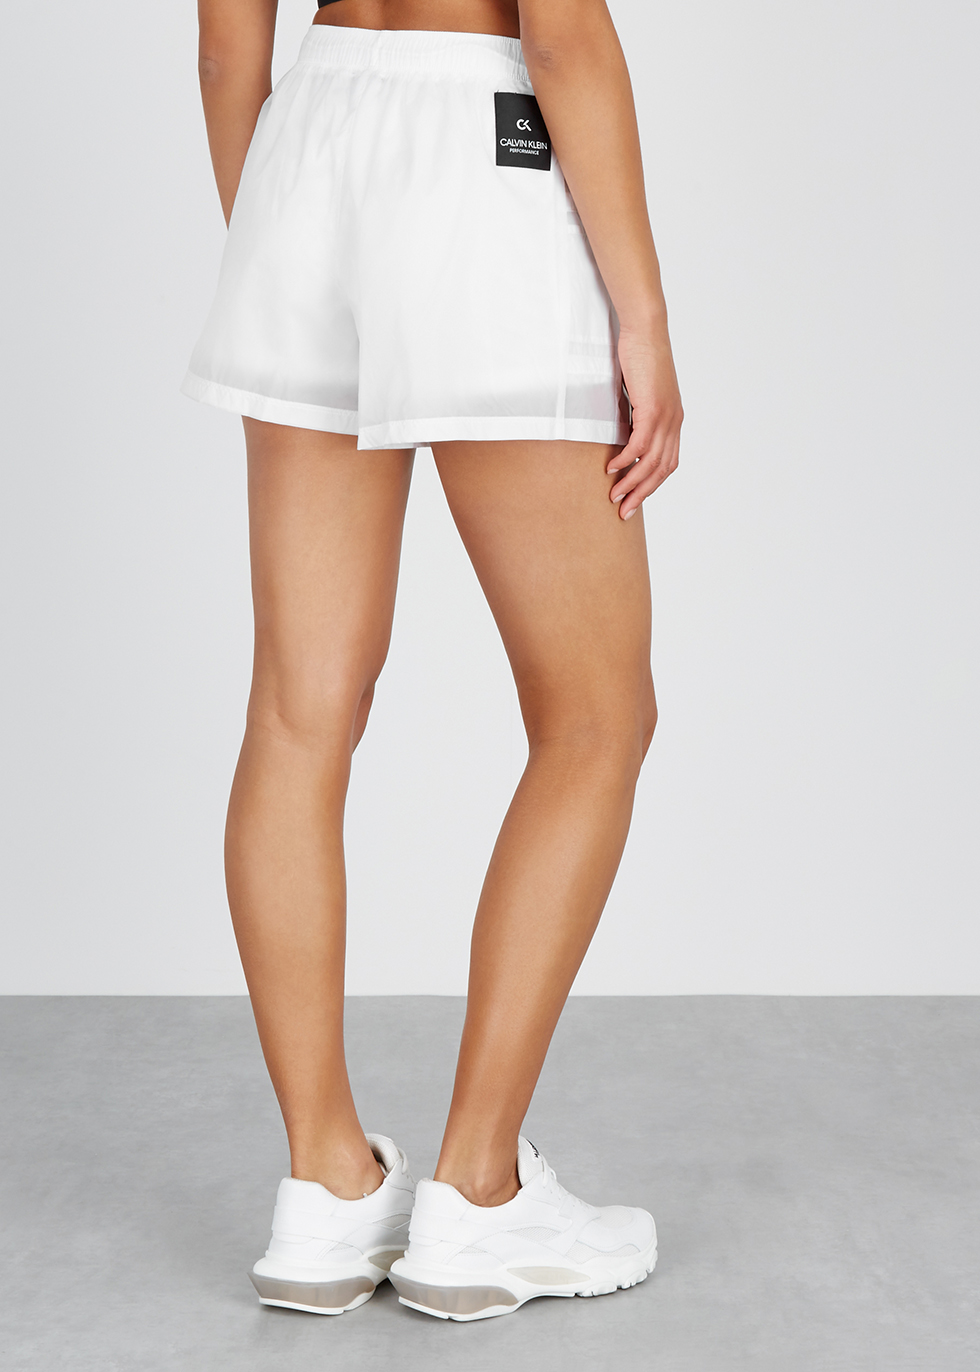 White shell shorts - Calvin Klein Performance